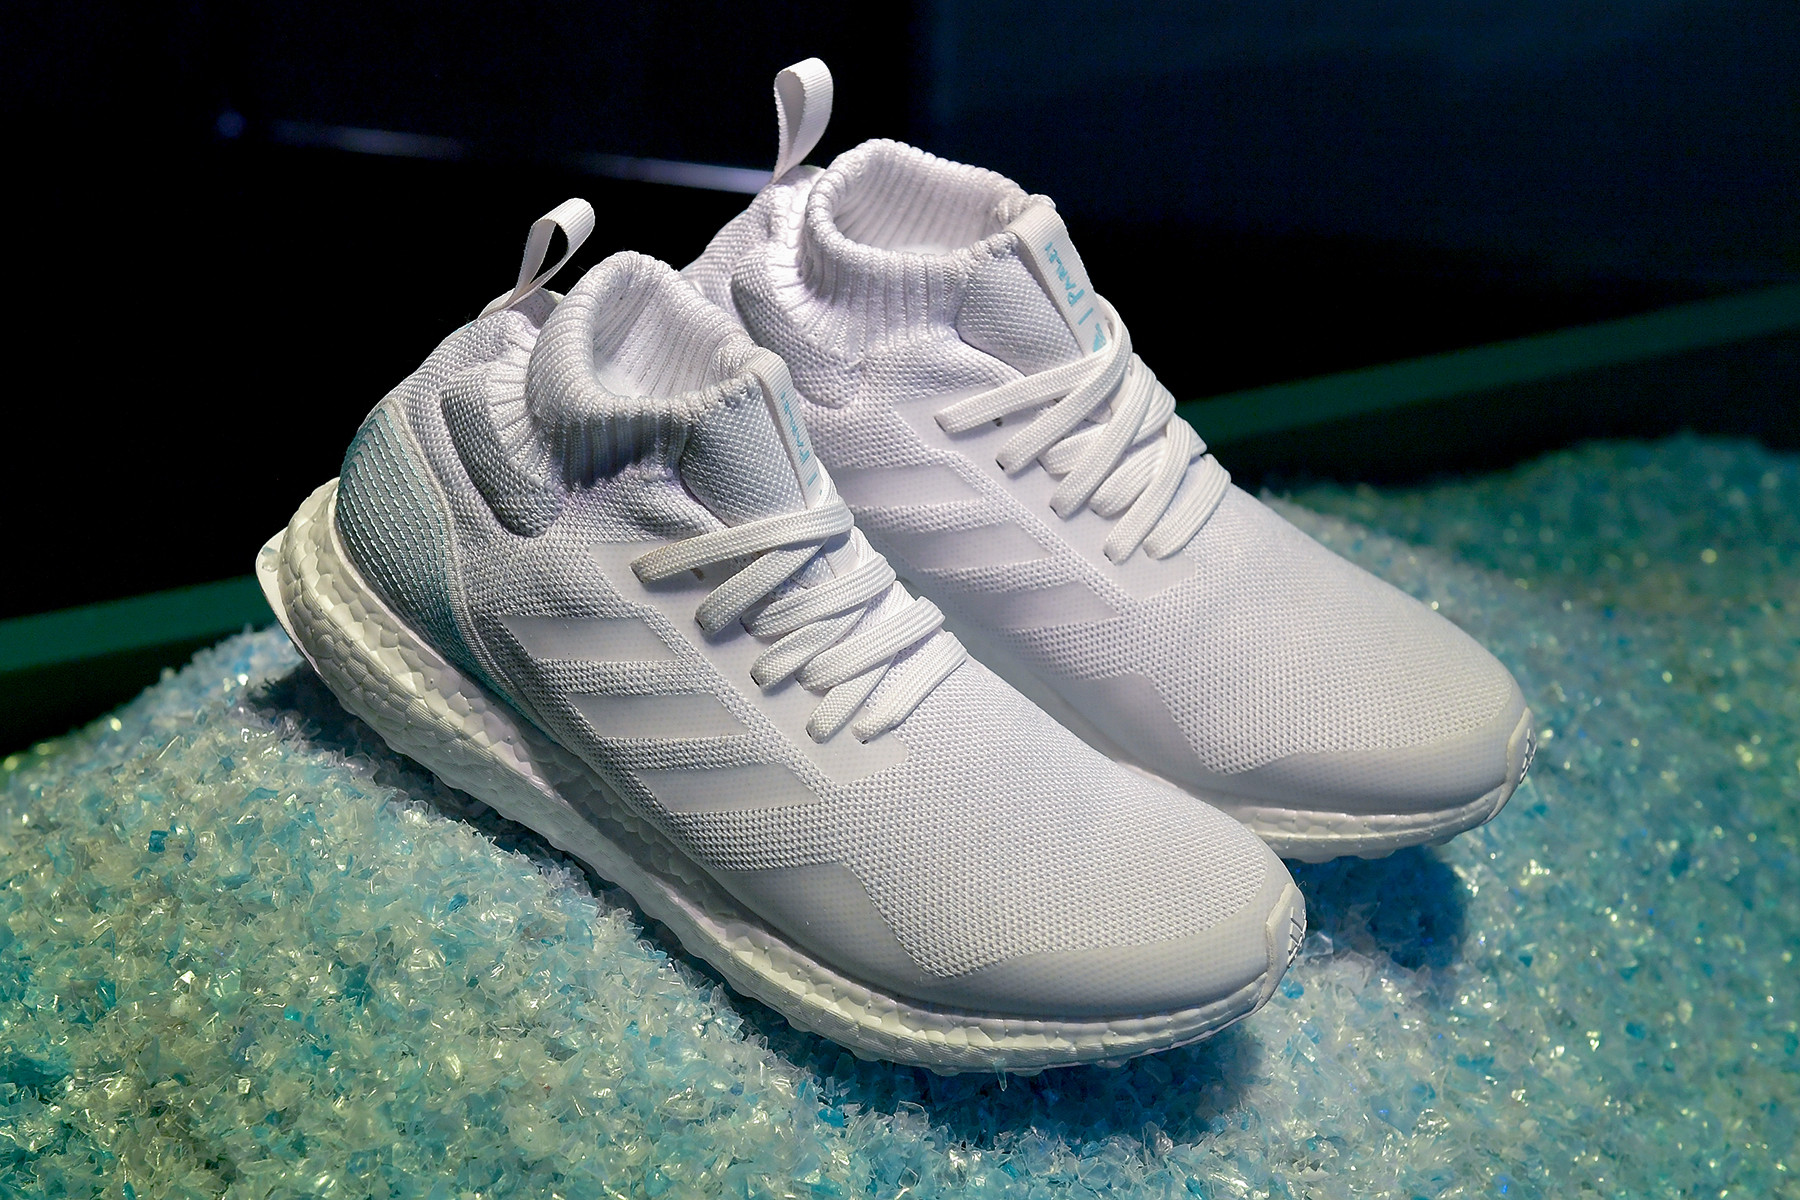 adidas To Use Recycled Plastics Only by